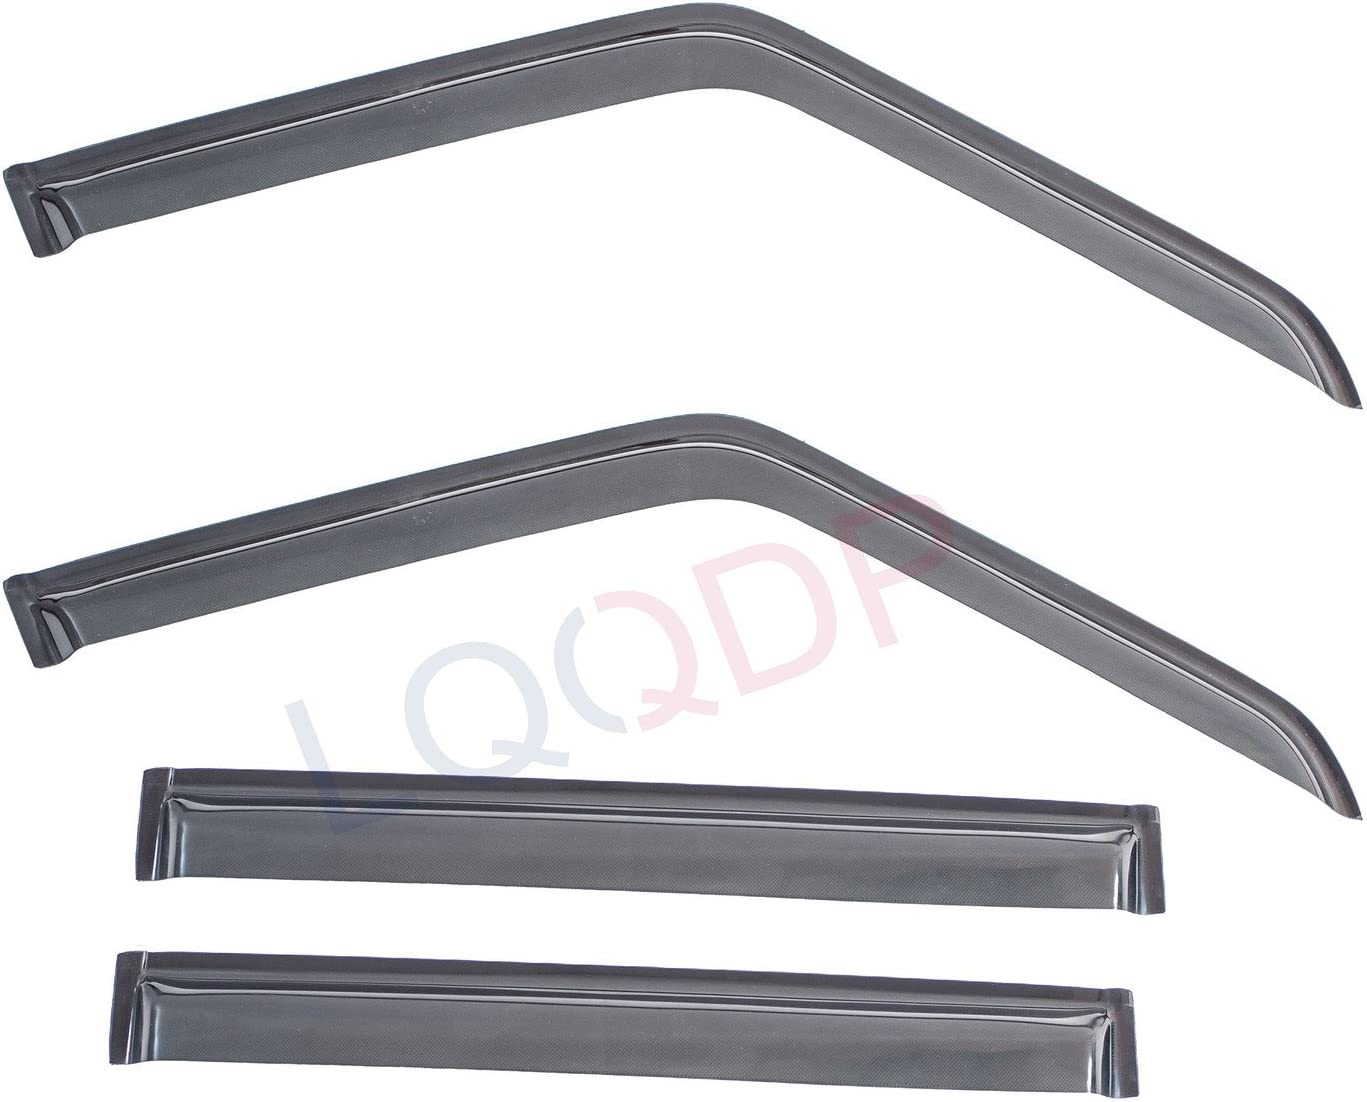 LQQDP 4pcs Front+Rear Smoke Sun//Rain Guard Outside Mount Tape-On Vent Shade Window Visors Fit 84-01 Jeep Cherokee 4-Door